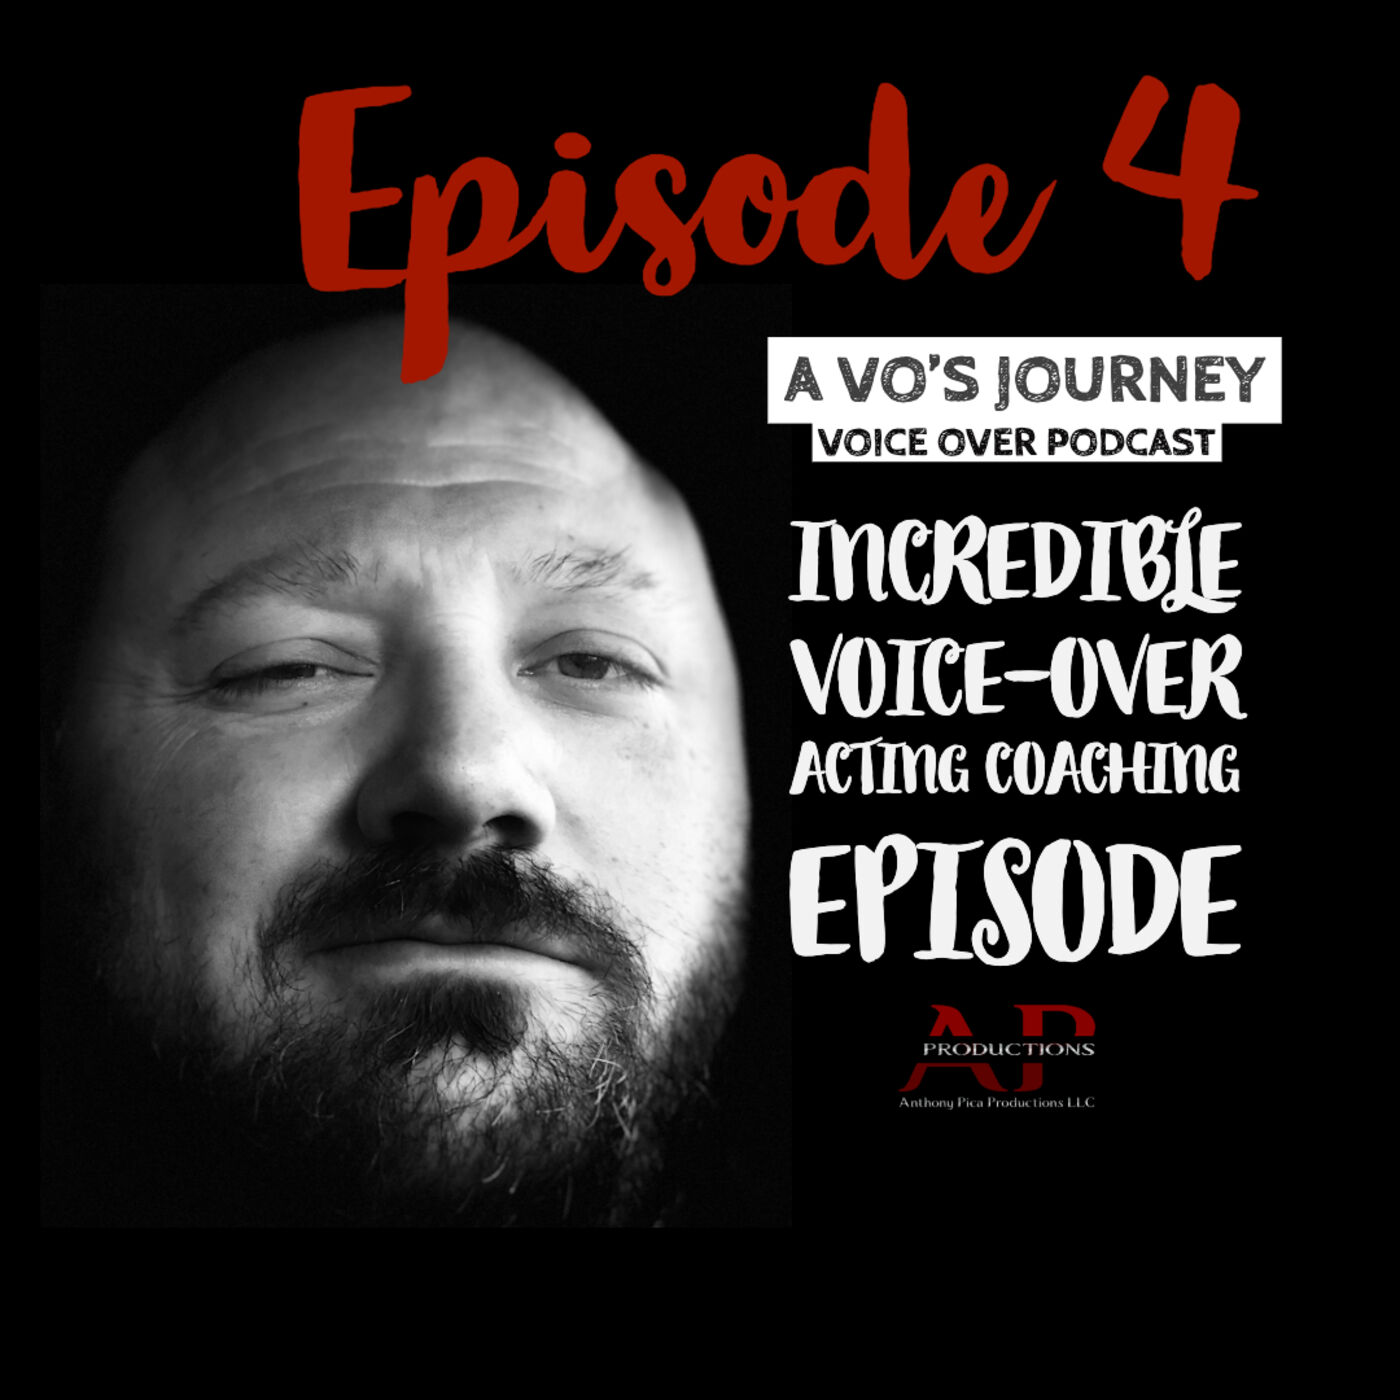 Ep. 4: INCREDIBLE VOICE-OVER ACTING COACHING EPISODE